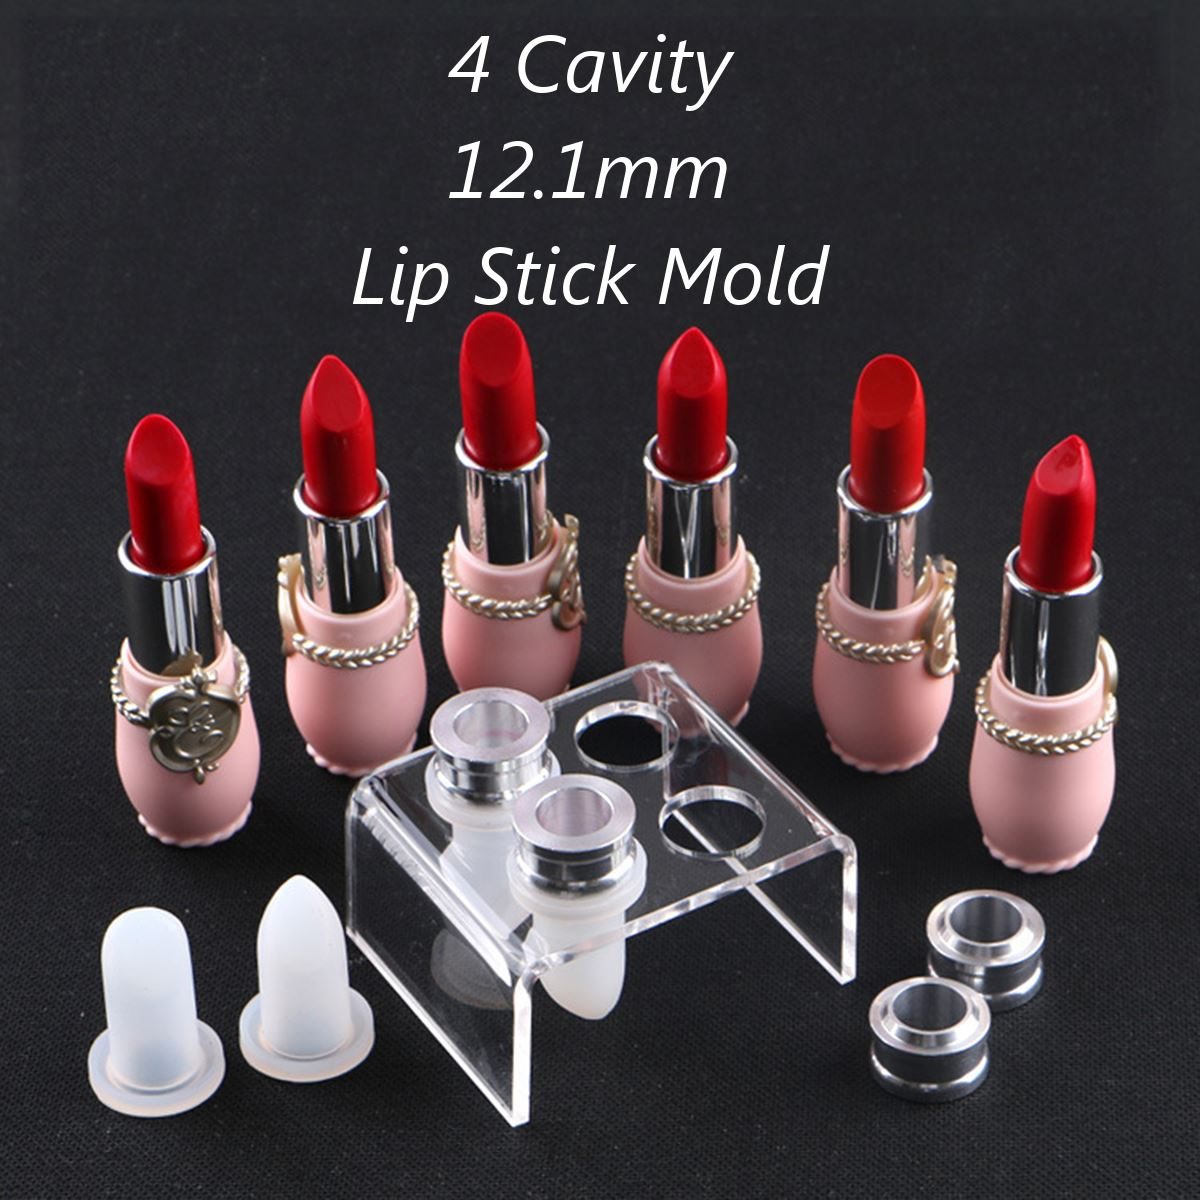 9pcs DIY Lipstick Mould Crafts Tool Kit Beak Shape Mould With Aluminum Ring Acrylic Holder Stand For 12.1mm Lip Balm Tube 2017